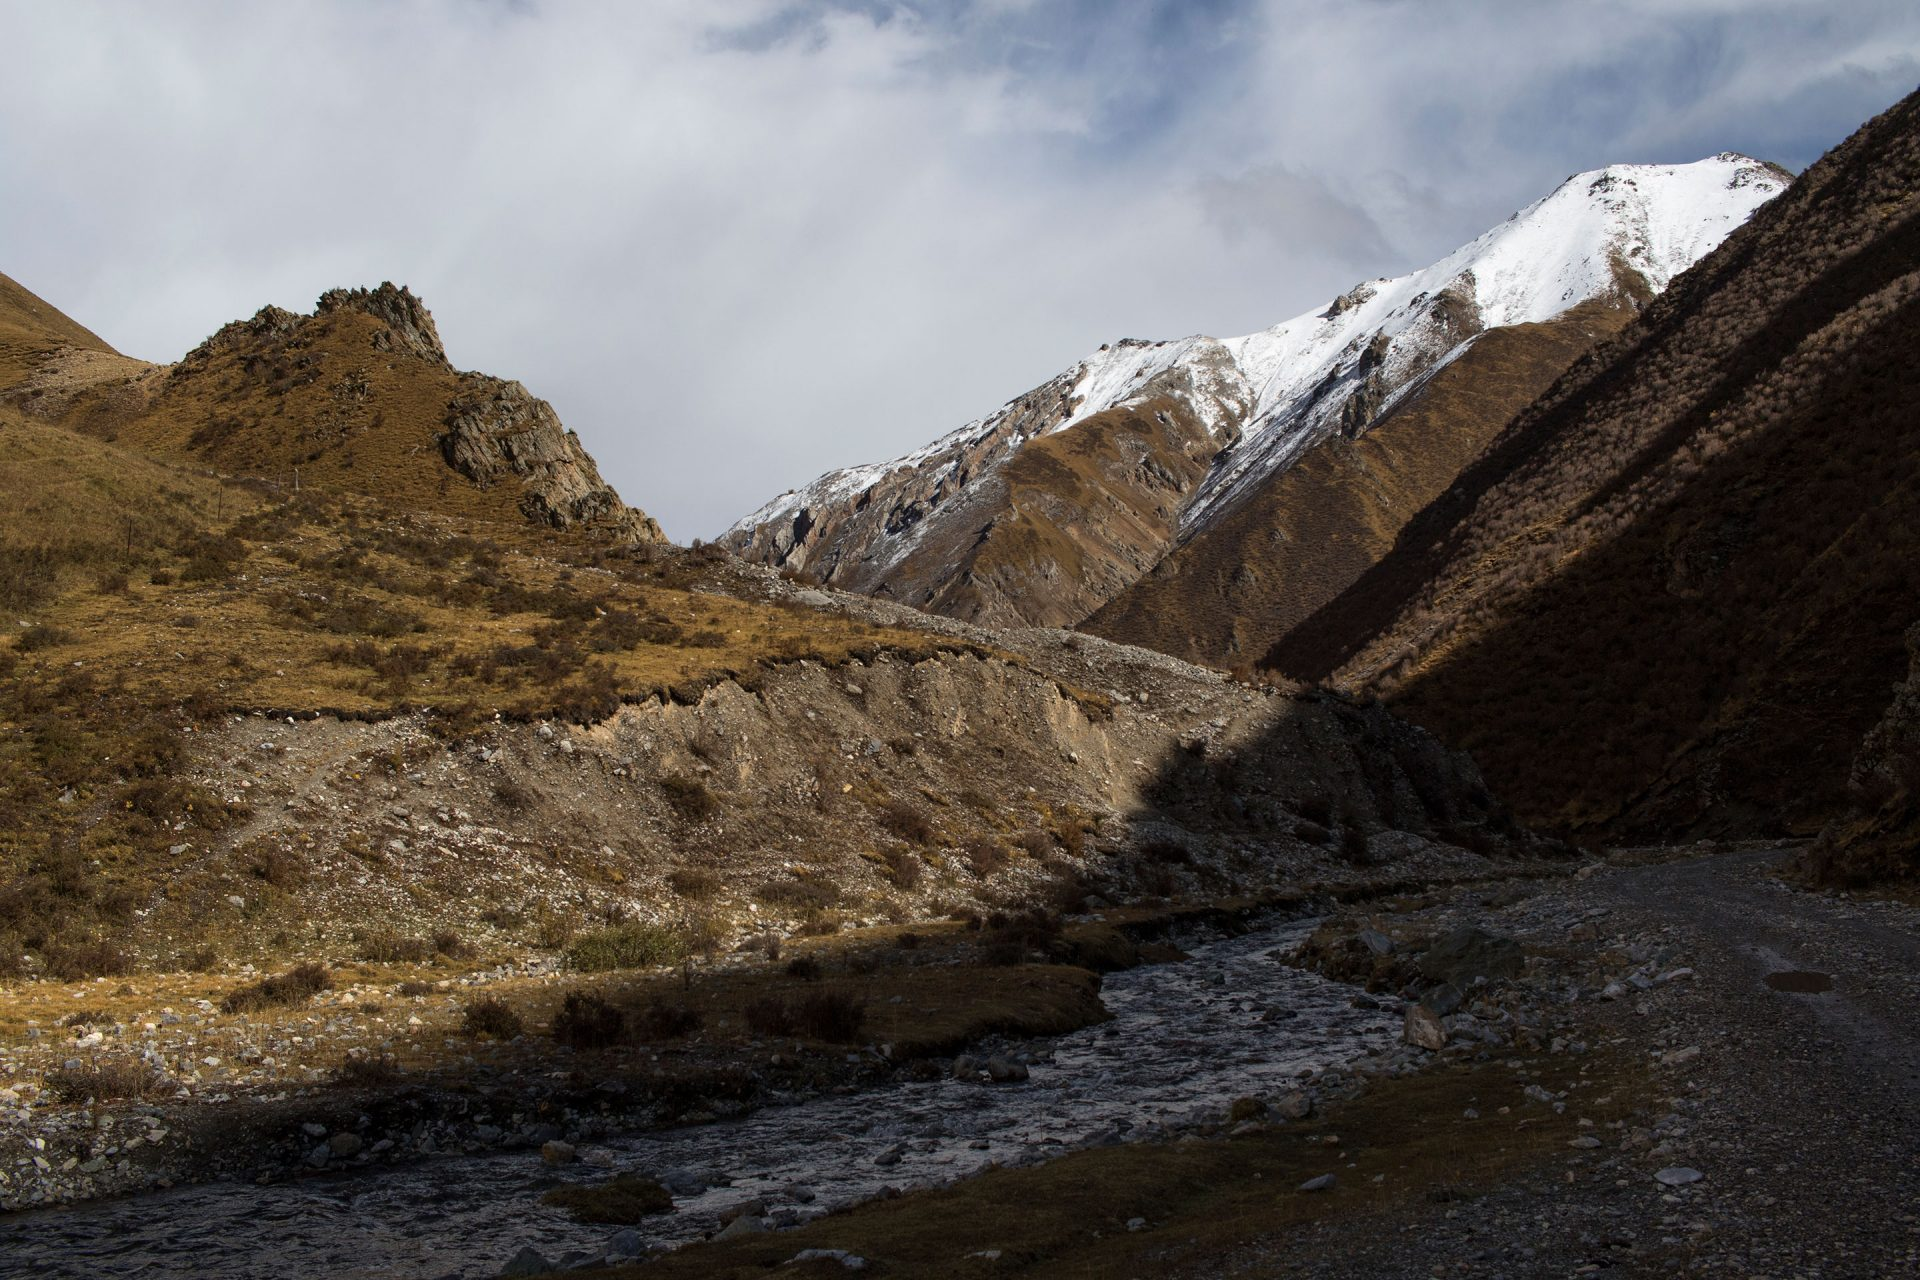 Even though we were at above 4000 m in the valleys, snow seemed only to stick at the peaks.